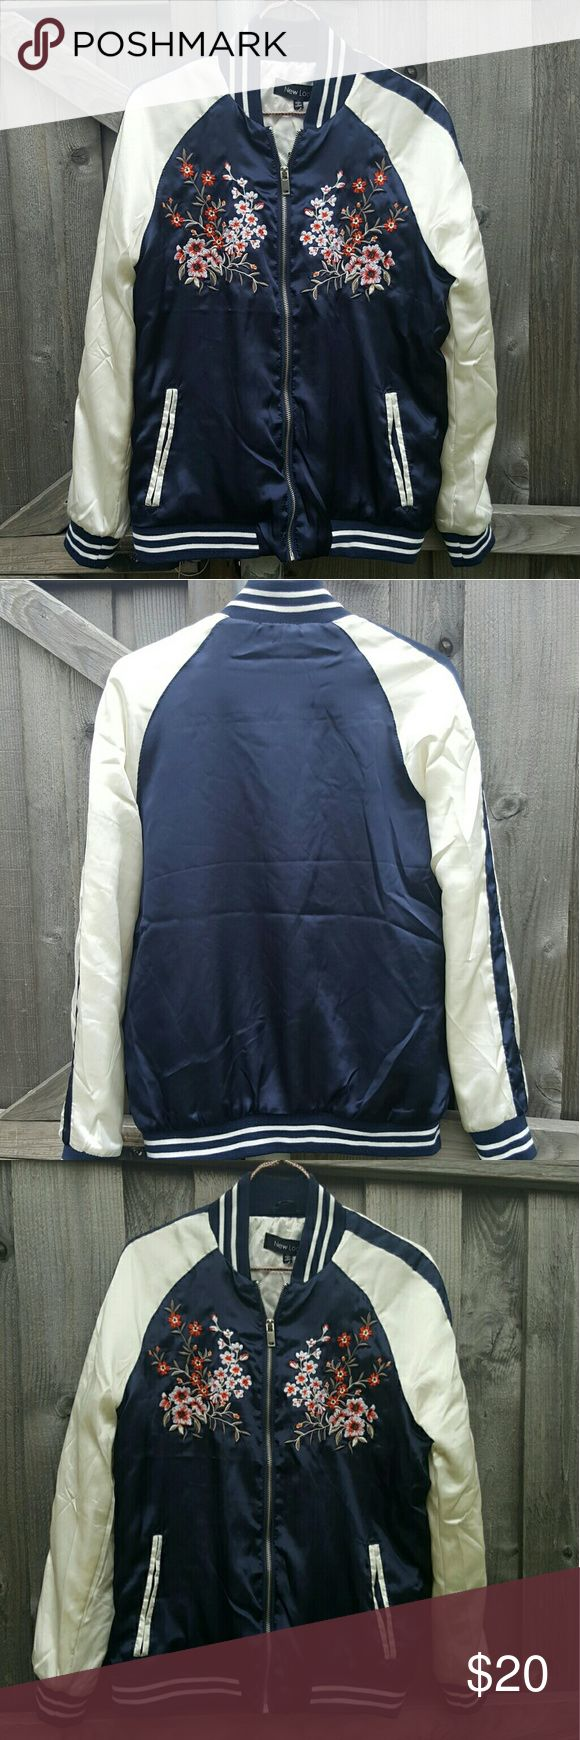 Navy Blue Bomber Jacket NEW WITH TAGS. Never used.  Size M women's bomber Jacket.  Bought from the mall.   Listed as Zara for exposure Zara Jackets & Coats